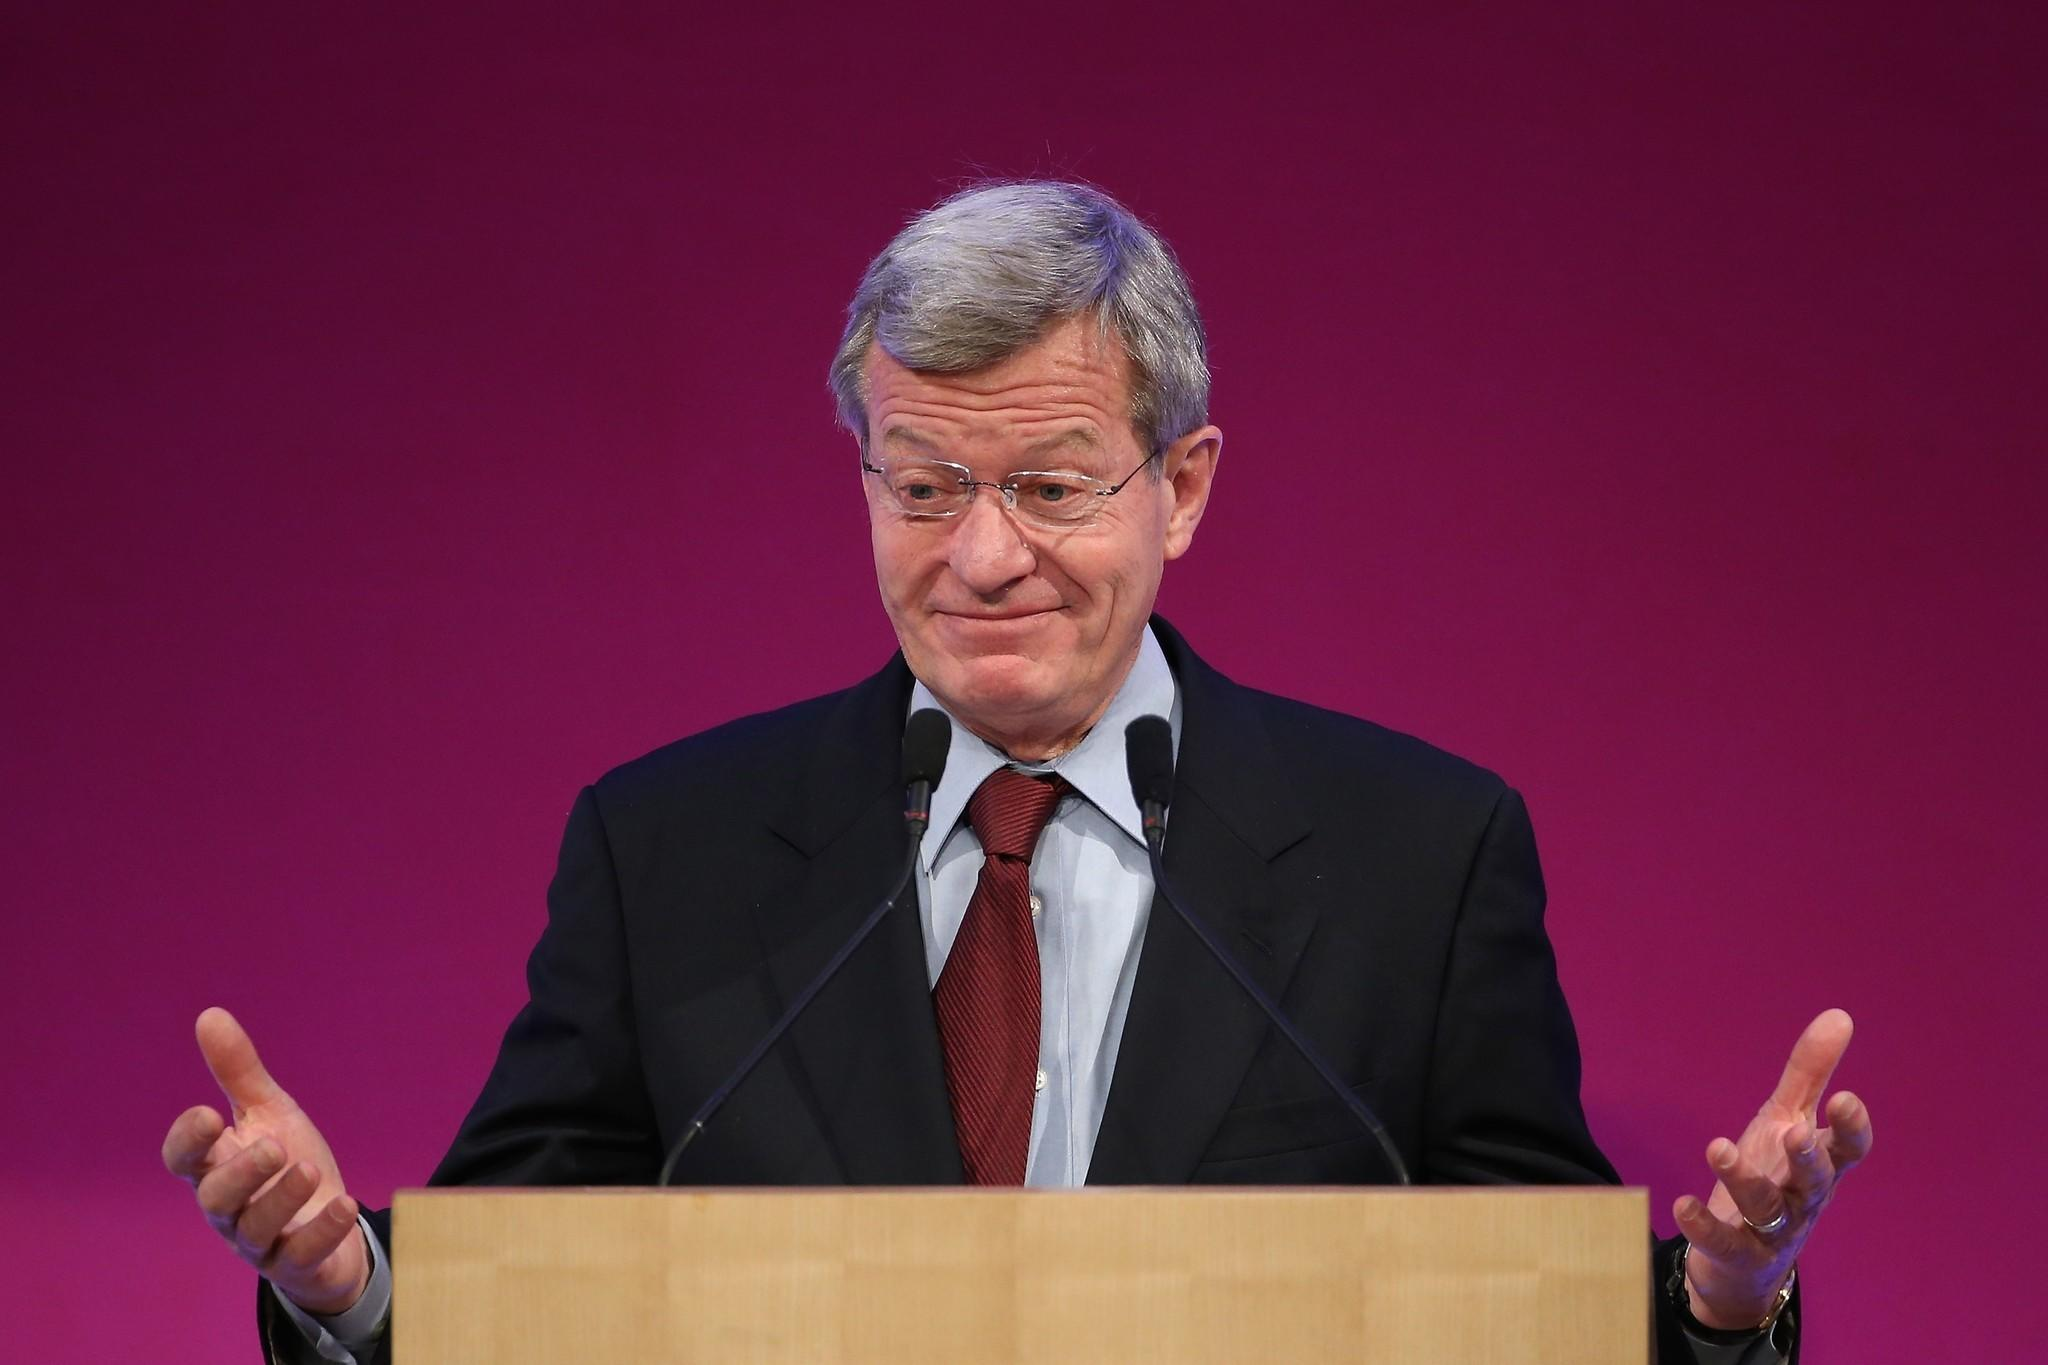 U.S. Ambassador to China Max Baucus said in a federal hearing that he was not an expert on China.